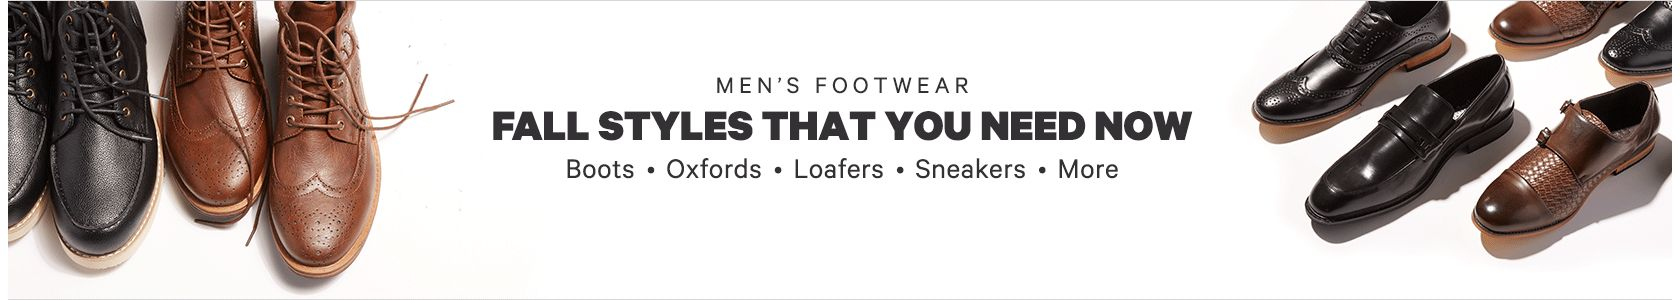 Men's Fall Footwear